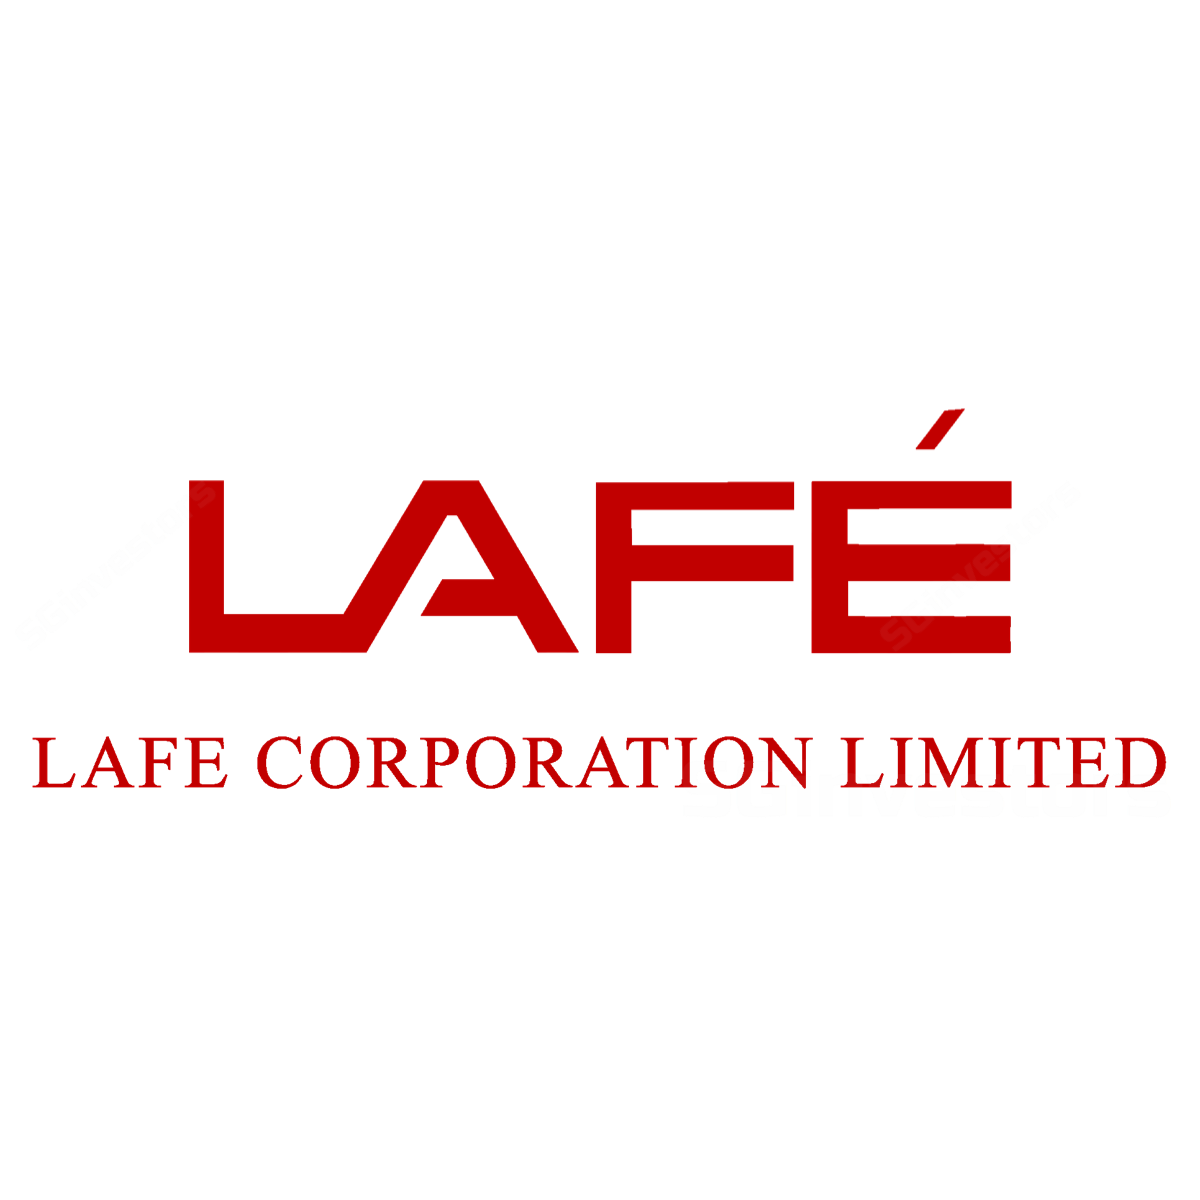 LAFE CORPORATION LIMITED (AYB.SI)